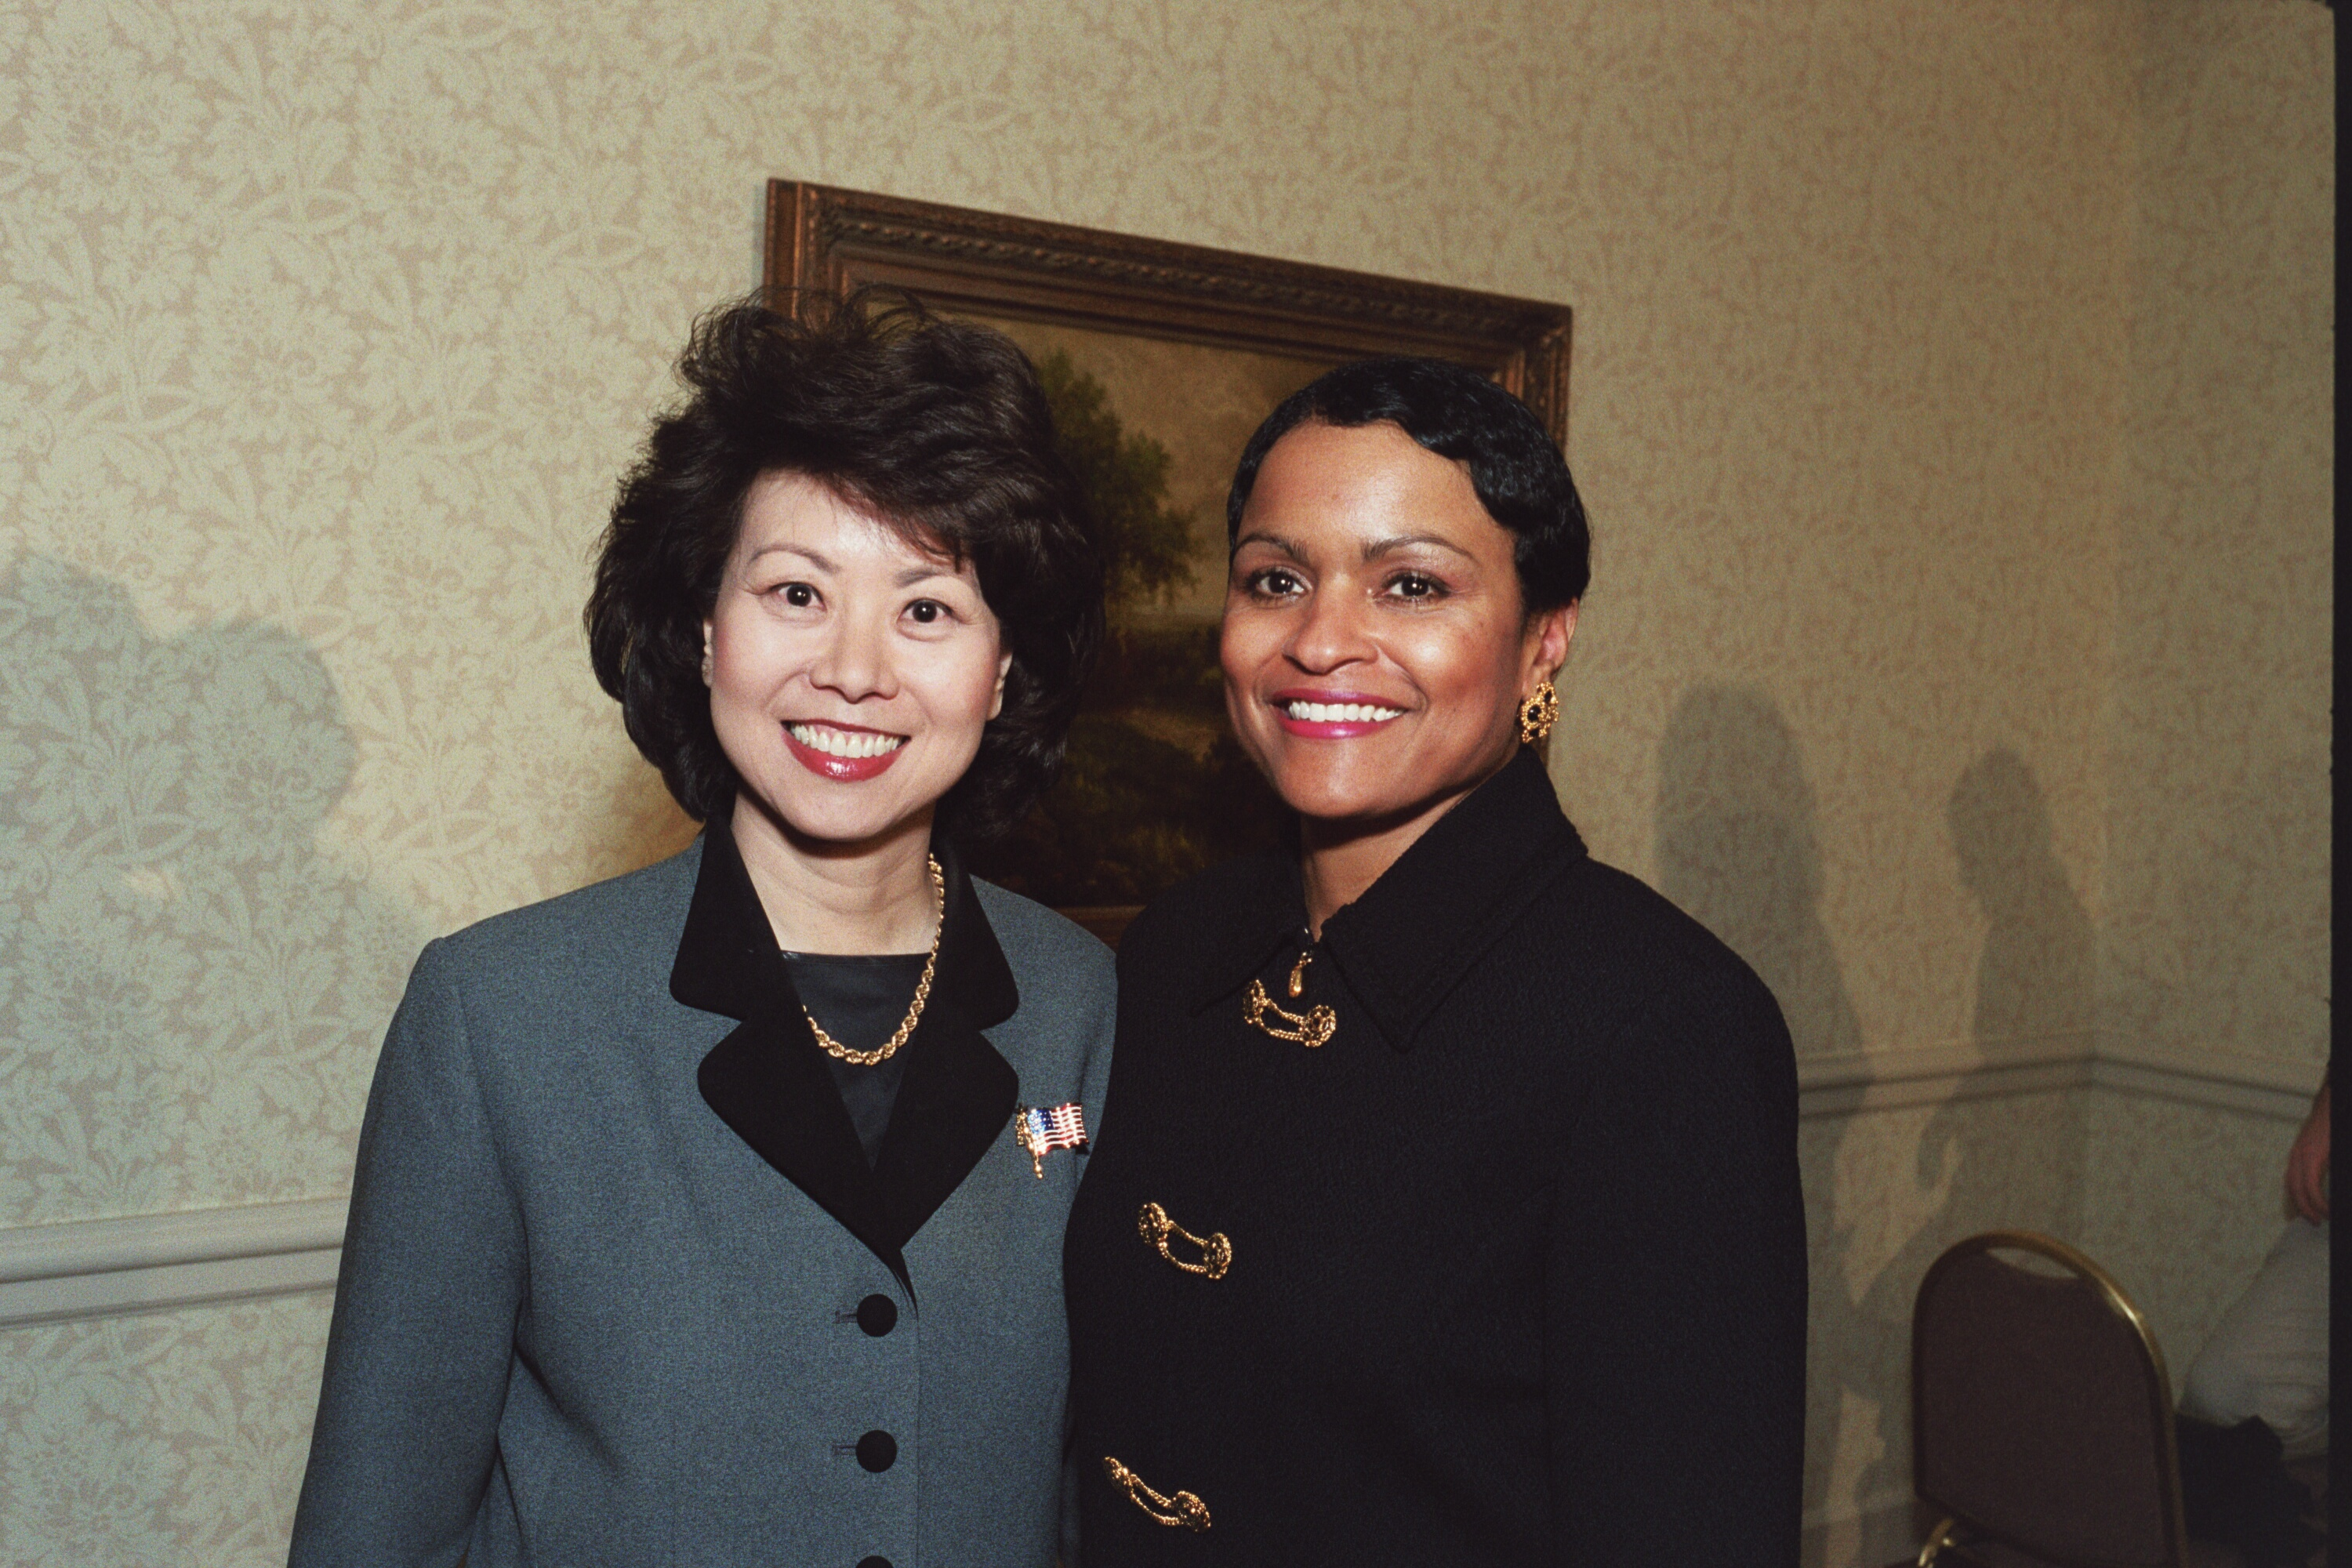 Office of the Secretary - Secretary Elaine Chao attending Women in Government Relations Luncheon